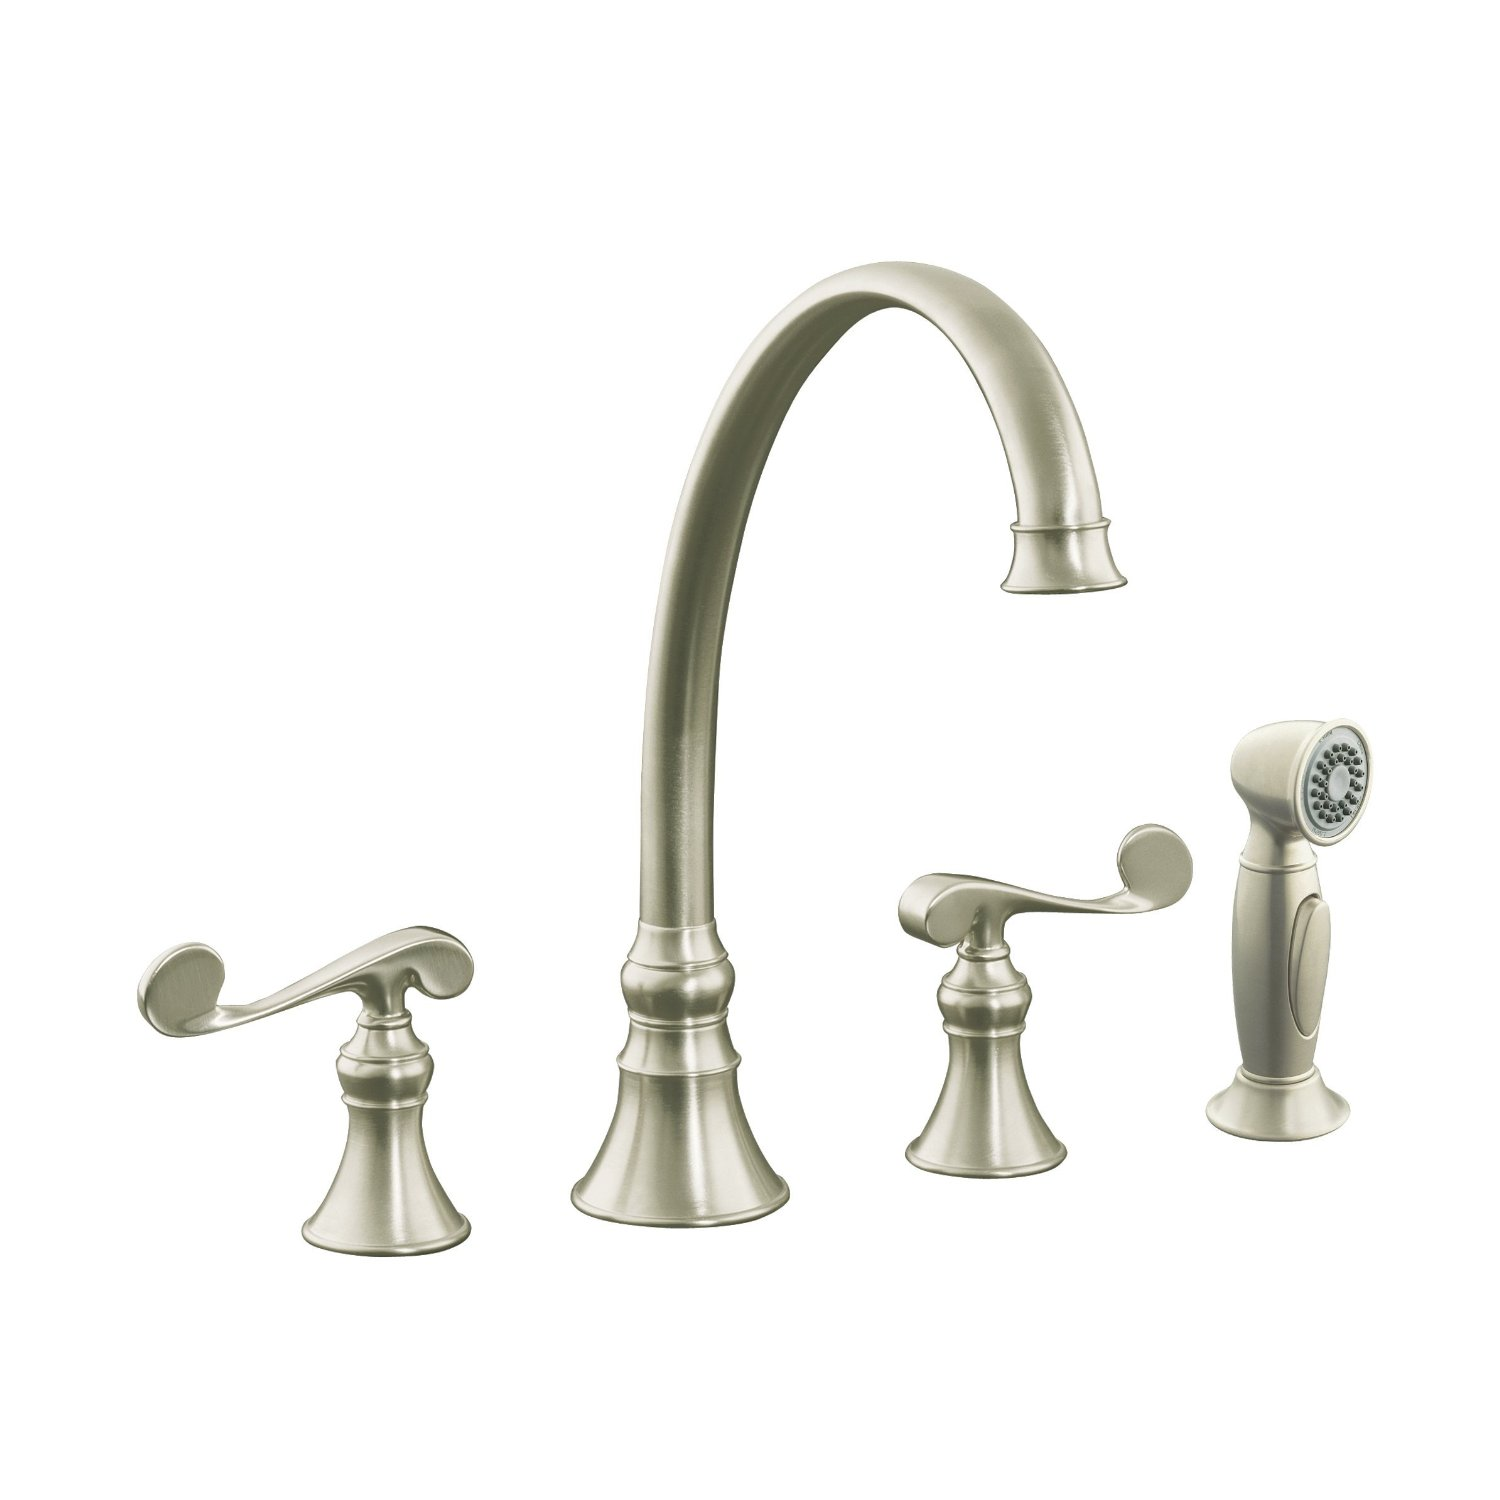 Kitchen Faucets Kohler : Shop for Best KOHLER K-16109-4-BN Revival Kitchen Sink Faucet (Vibrant ...